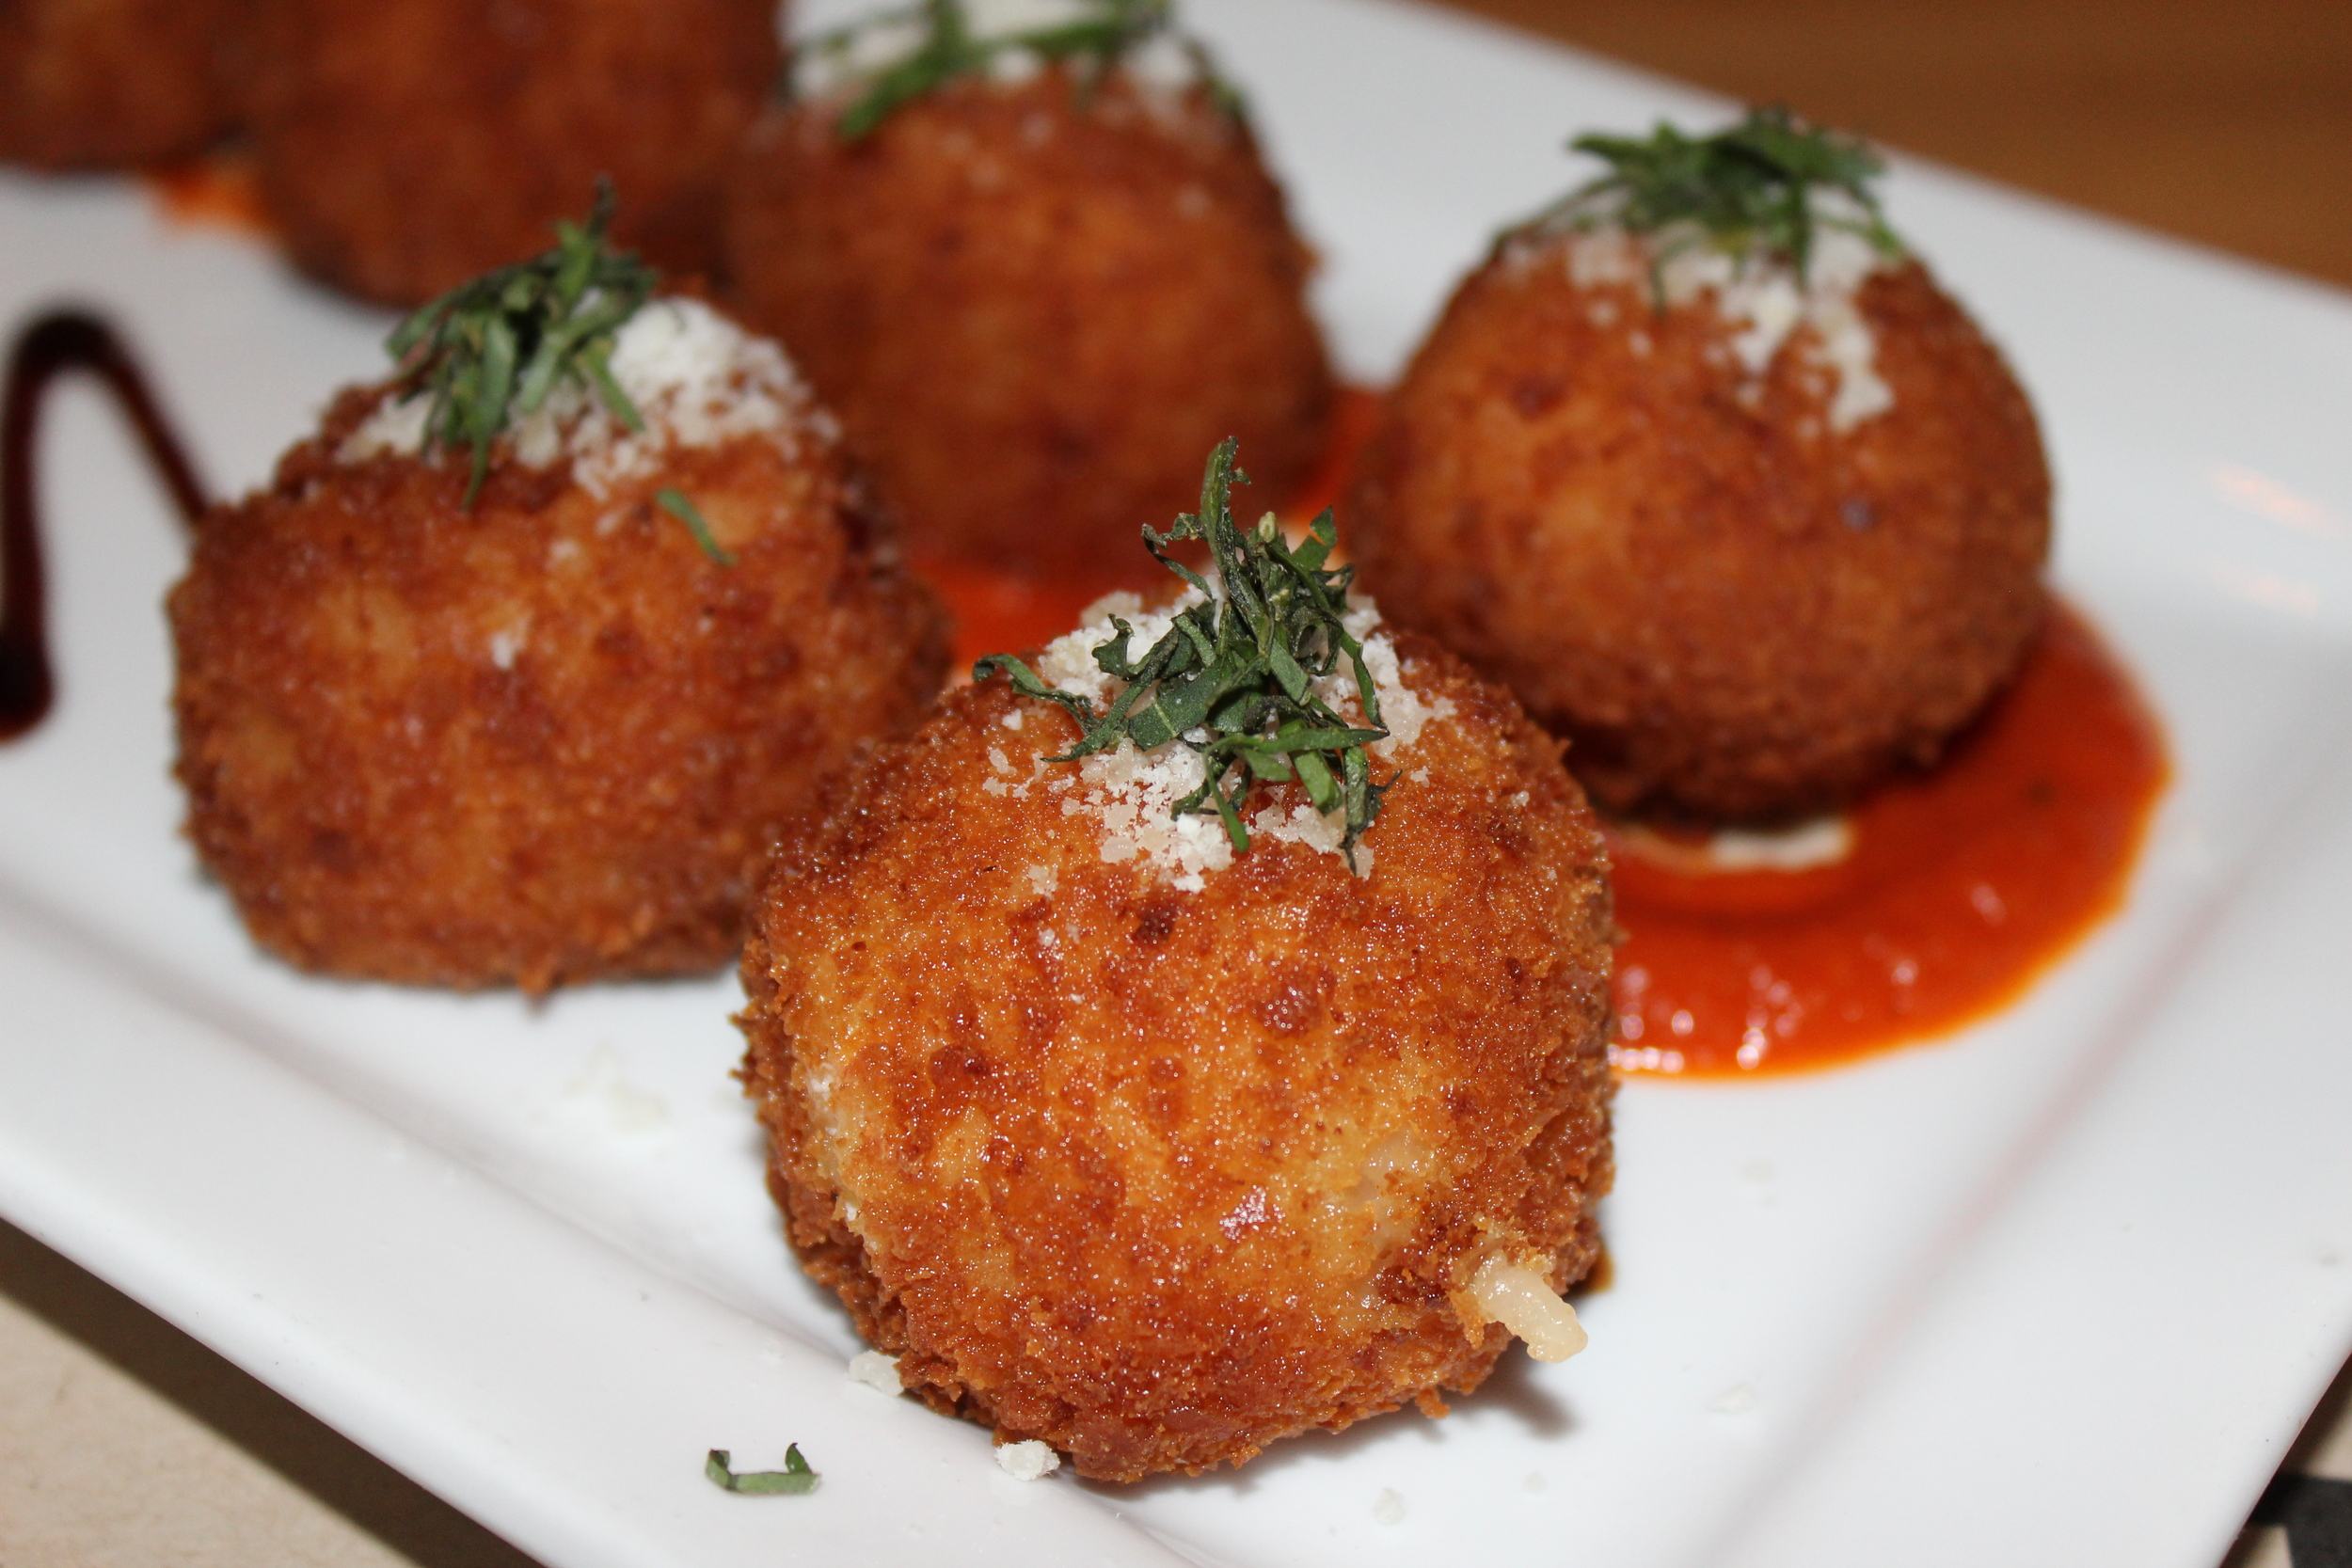 Arancini filled with house-pulled mozzarella with pomodoro and balsamic reduction